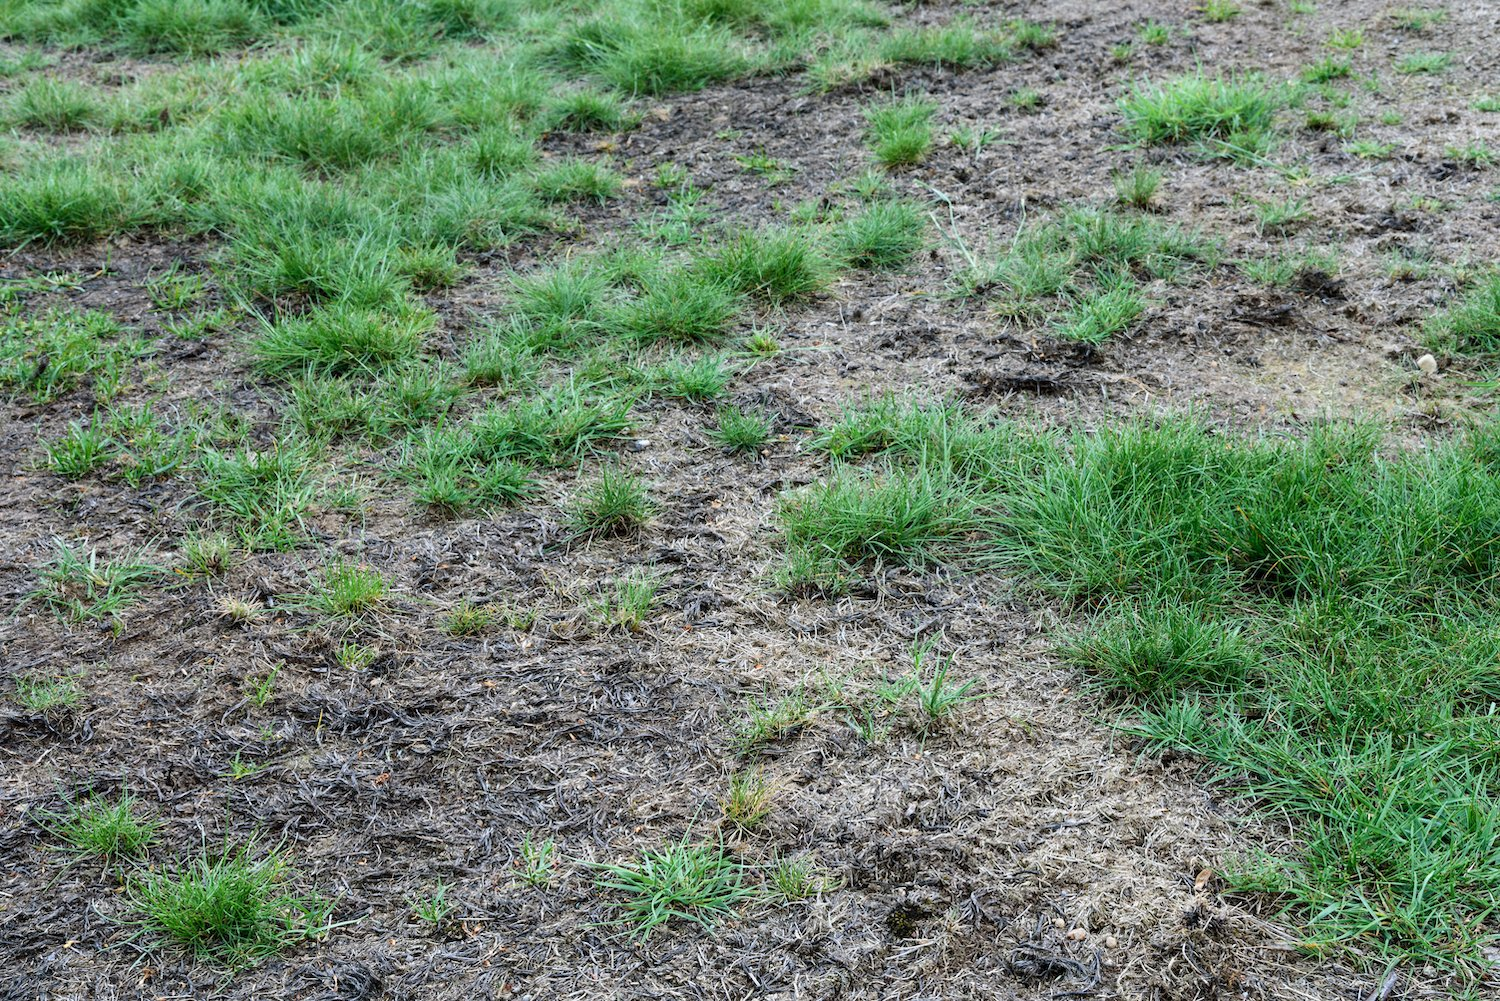 How To Tell The Difference Between Dead And Dormant Grass